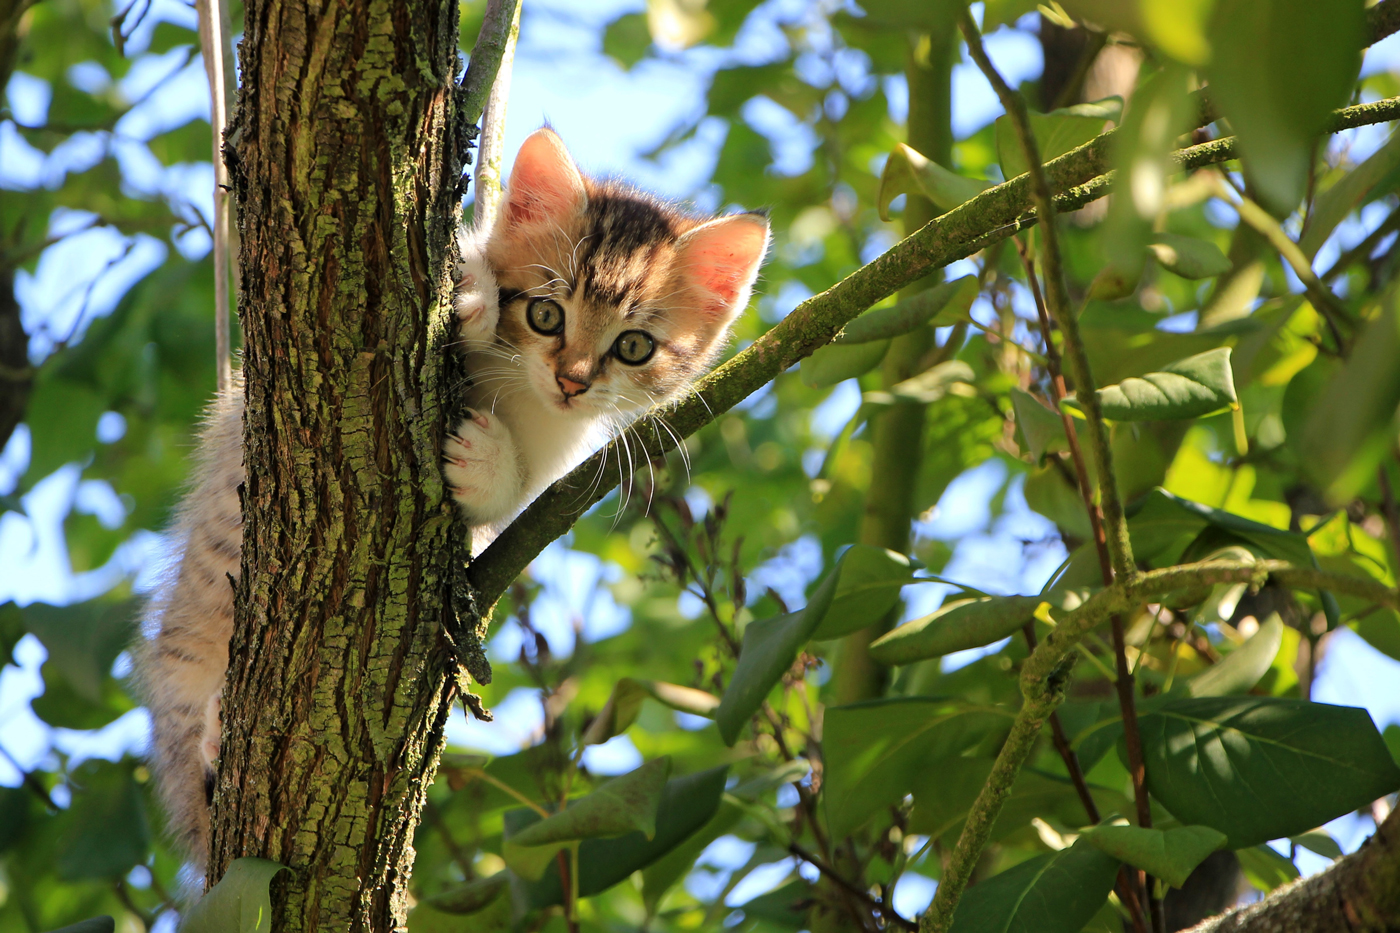 A young cat in a leafy tree